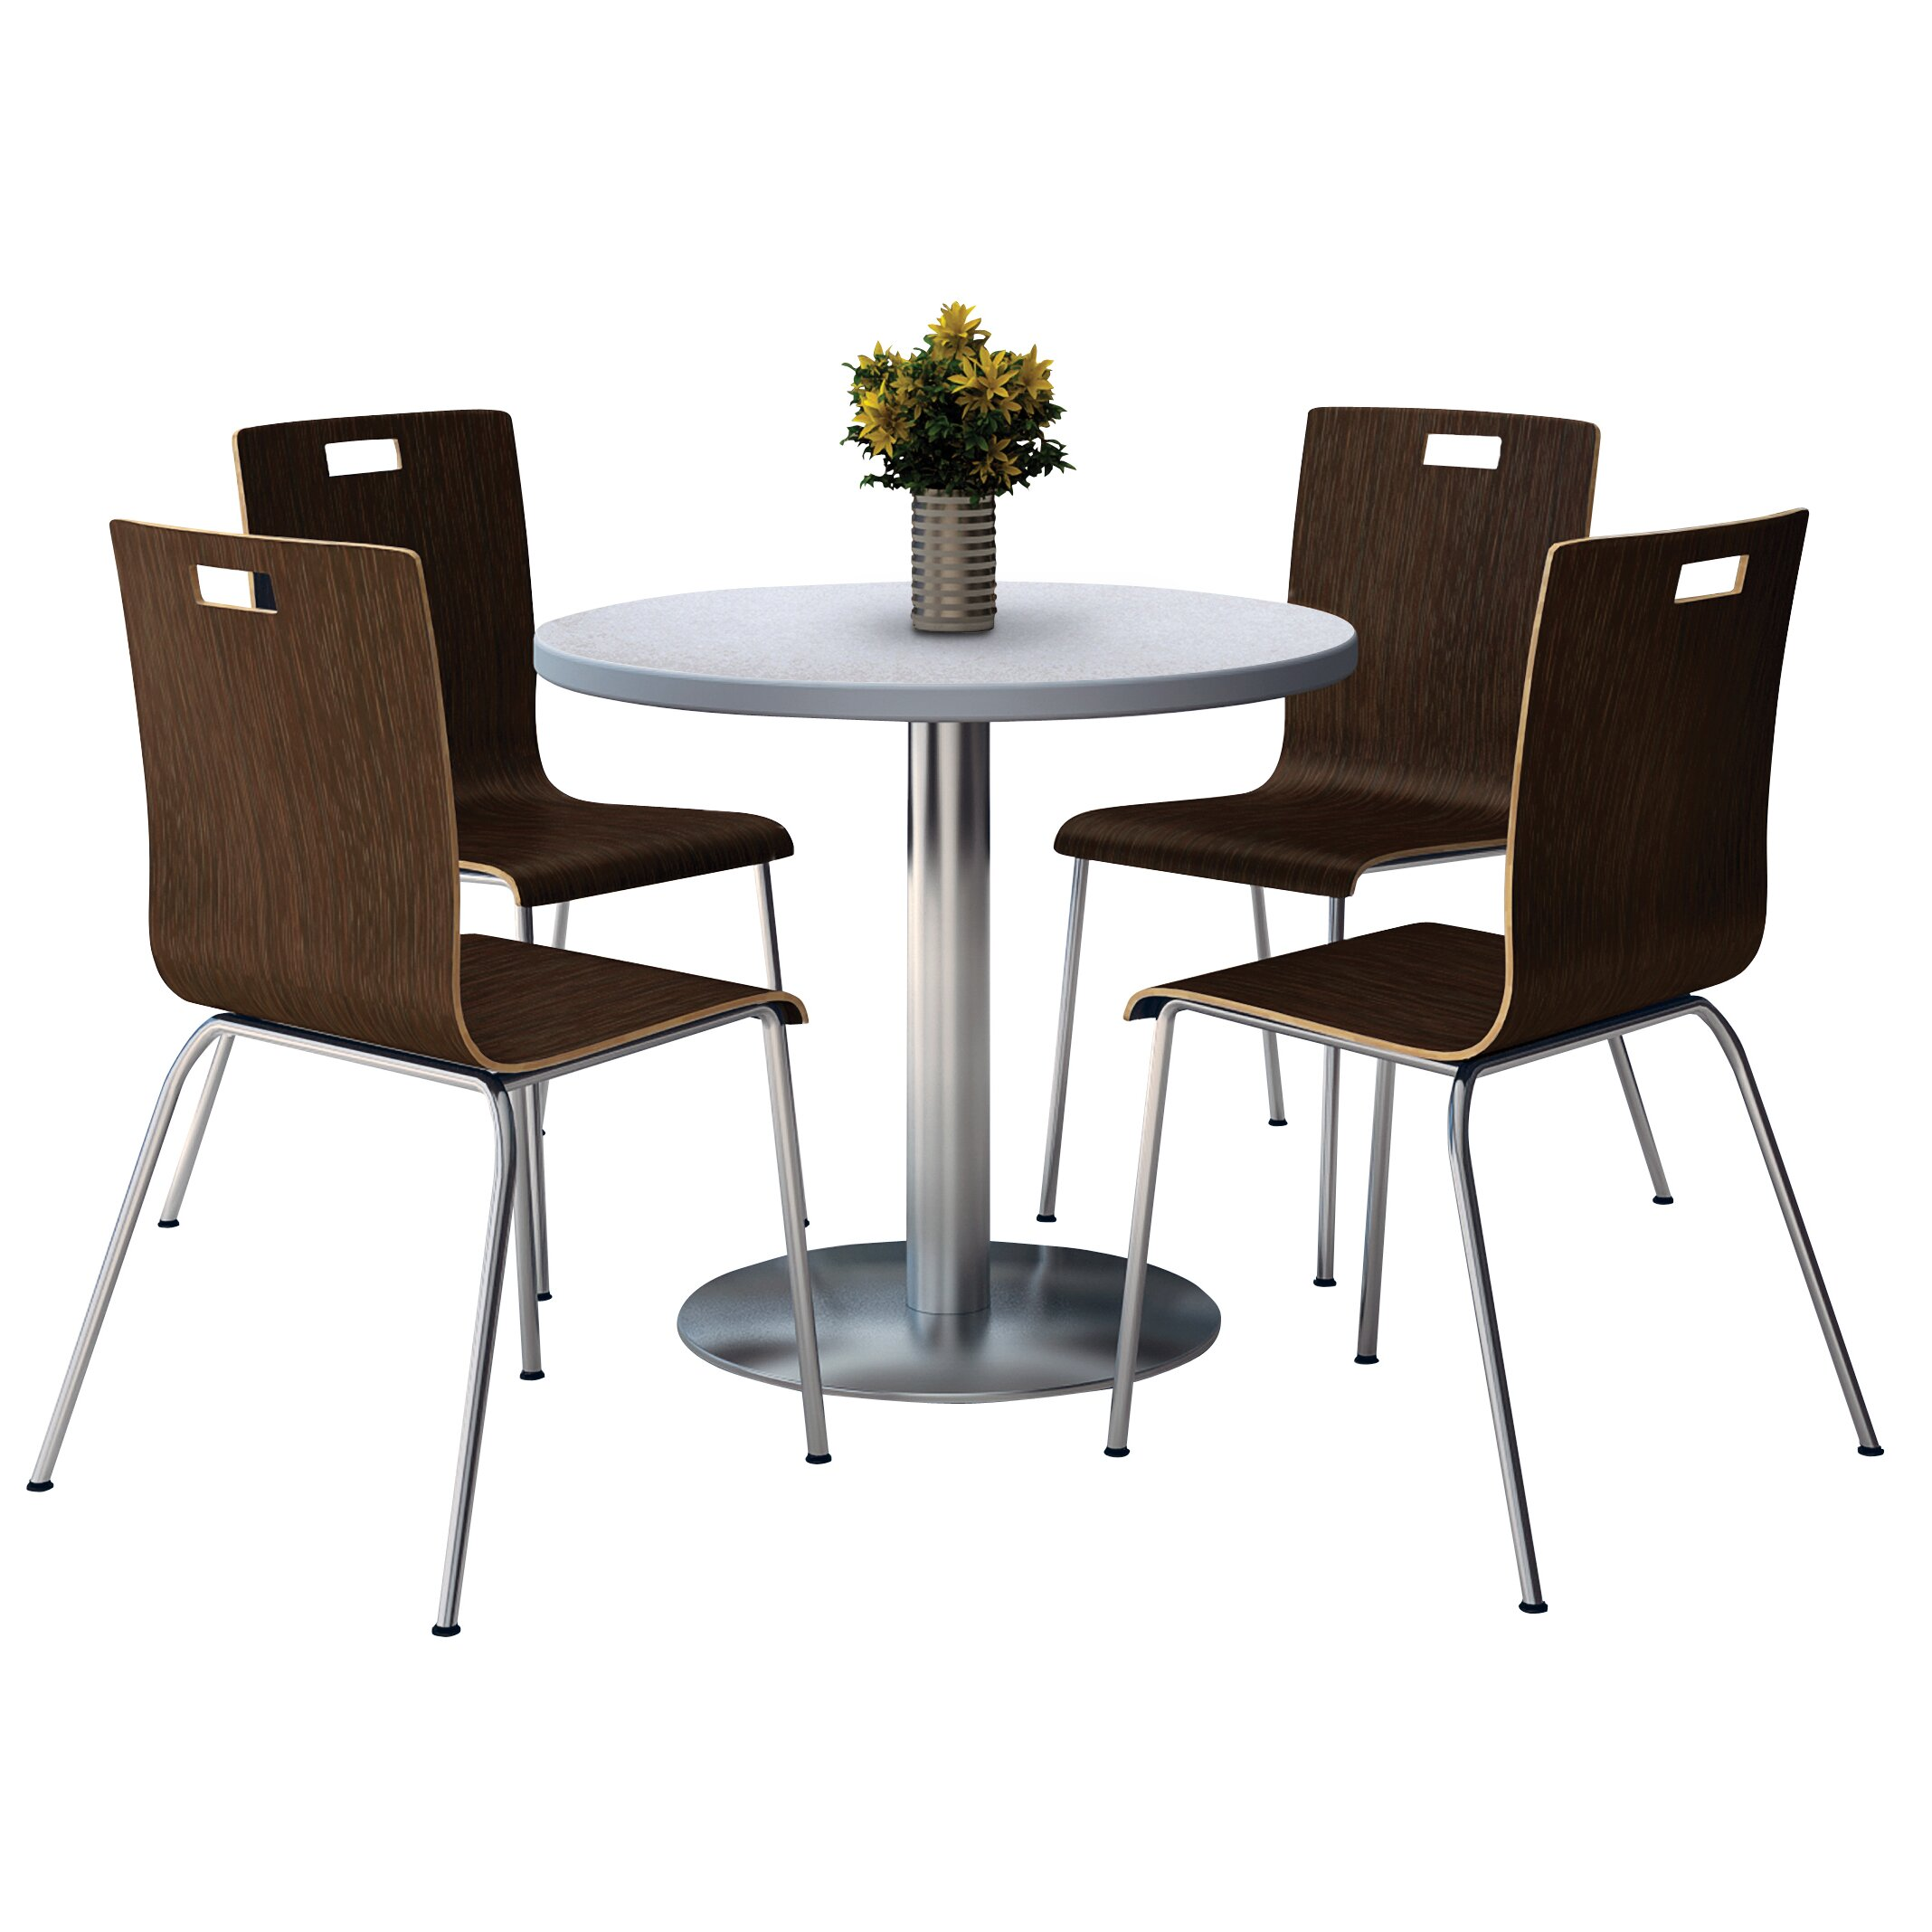 Round school table - Round School Lunch Table